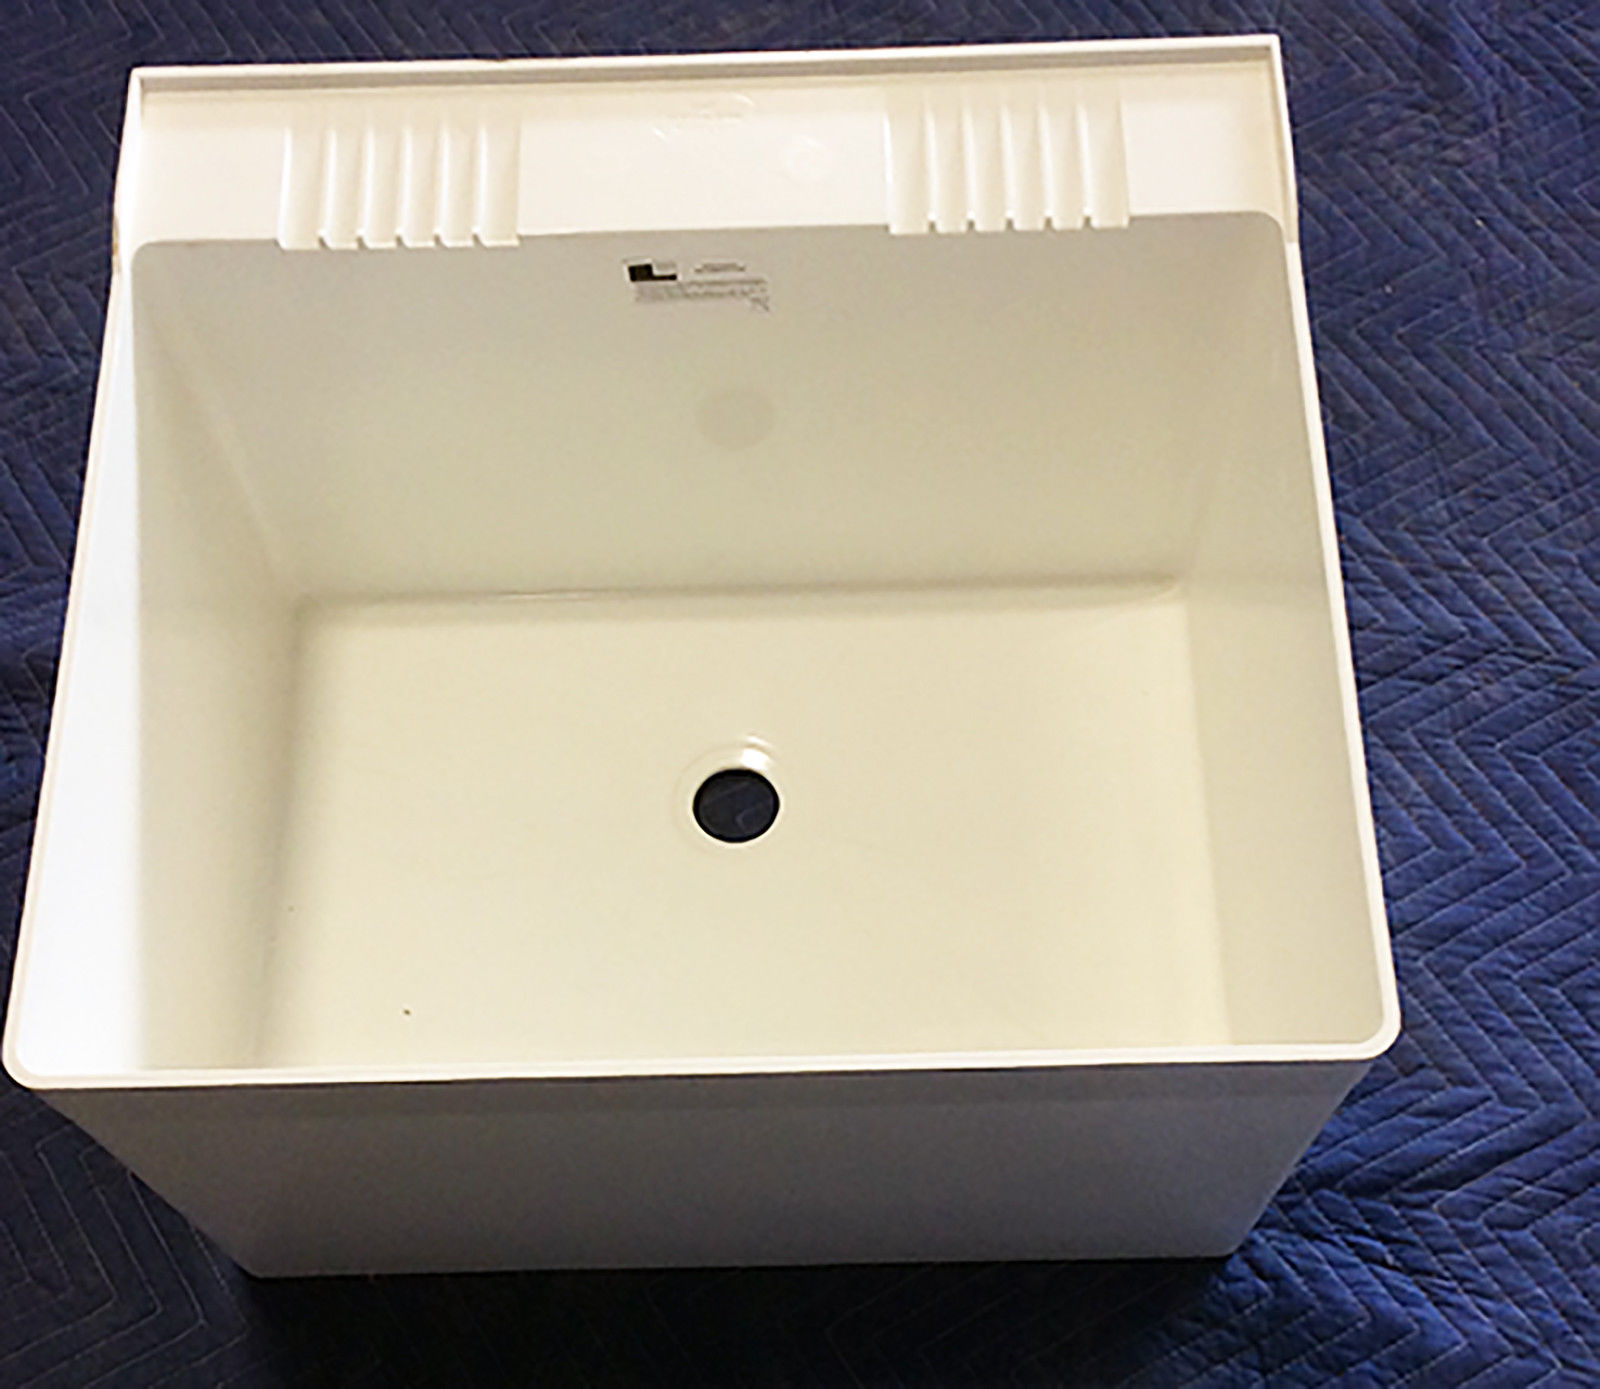 CLEARANCE>> L1 FIAT WALL HUNG LAUNDRY TUB WITH WALL BRACKET 23x22x14 HOLDS 20GAL **MISSING MOUNTING BRACKET**